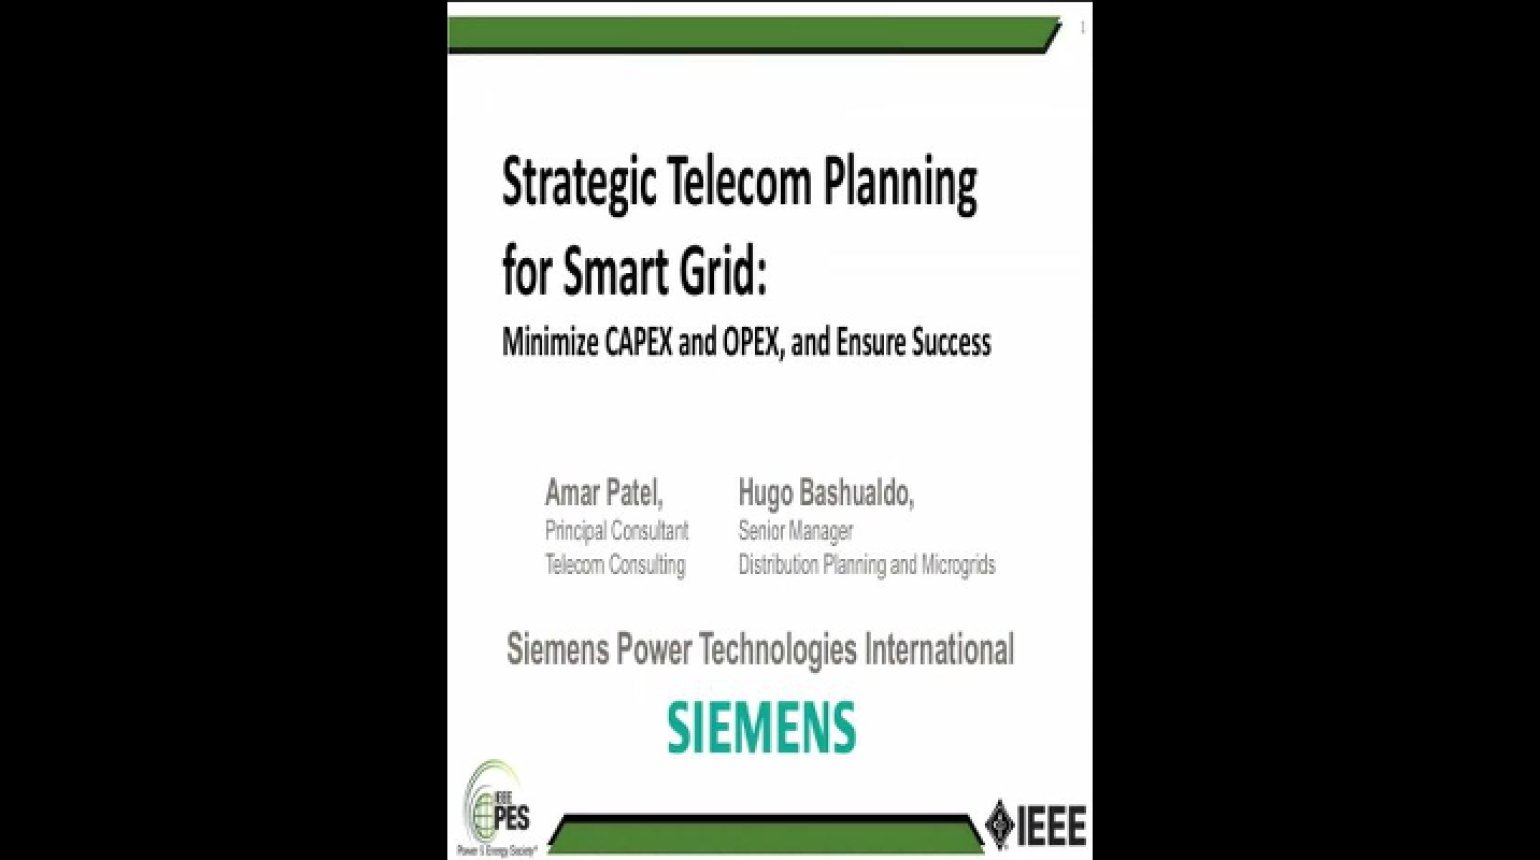 Strategic Telecom Planning for Smart Grid Minimizes CAPEX and OPEX and Ensure Success